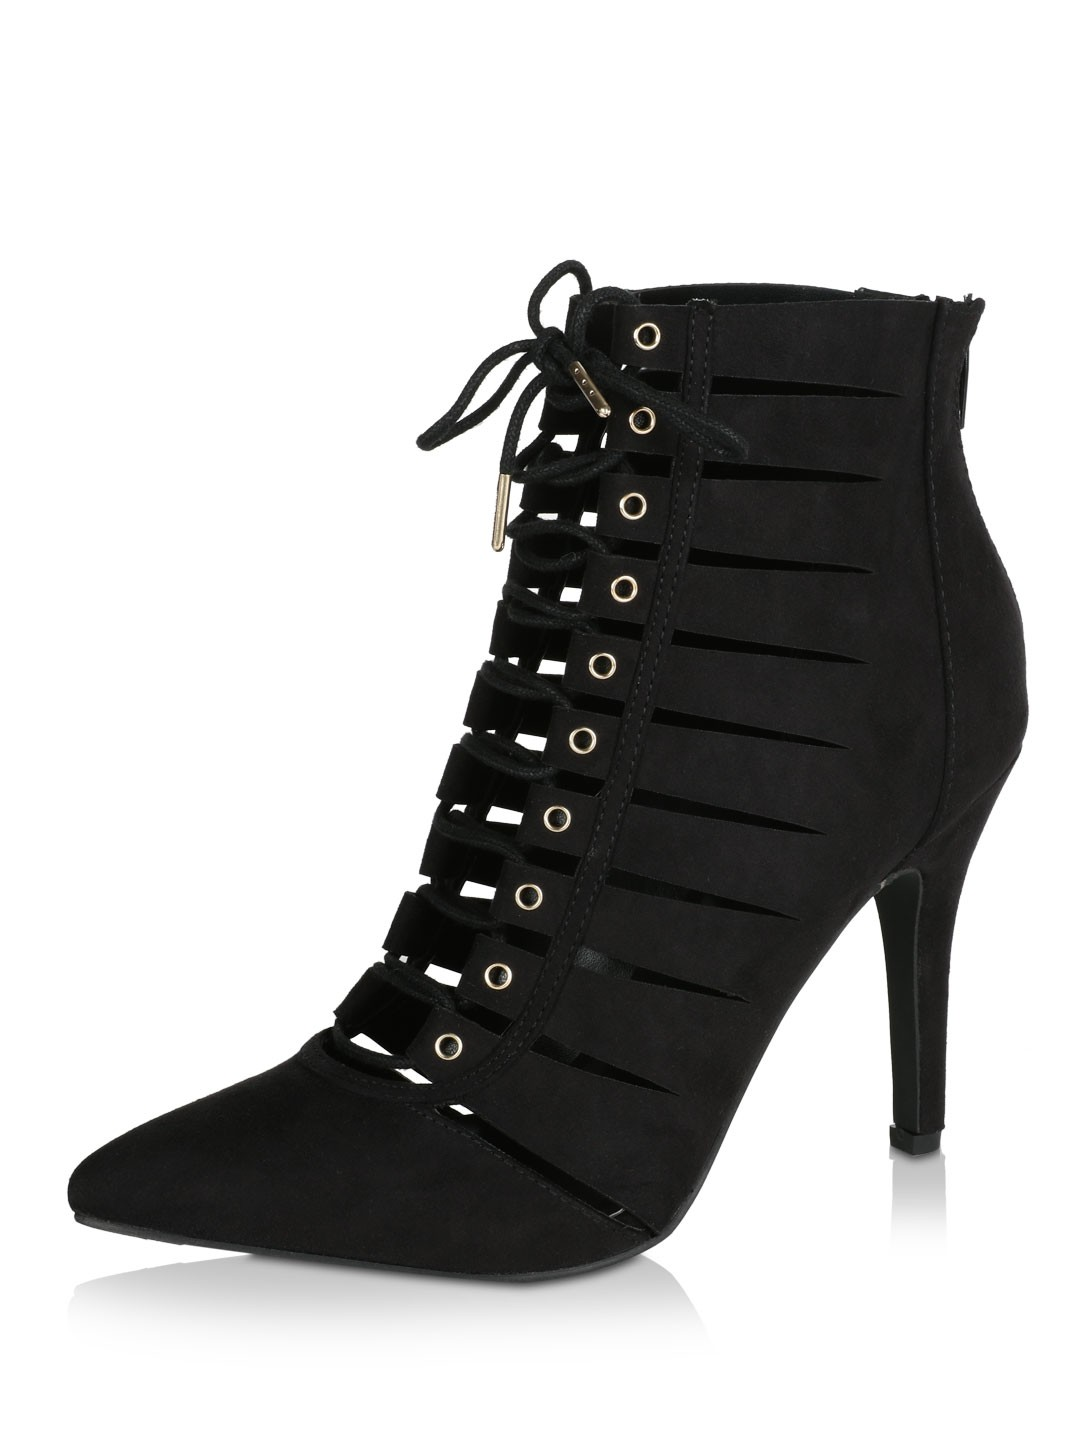 ankle boots for women india | Gommap Blog